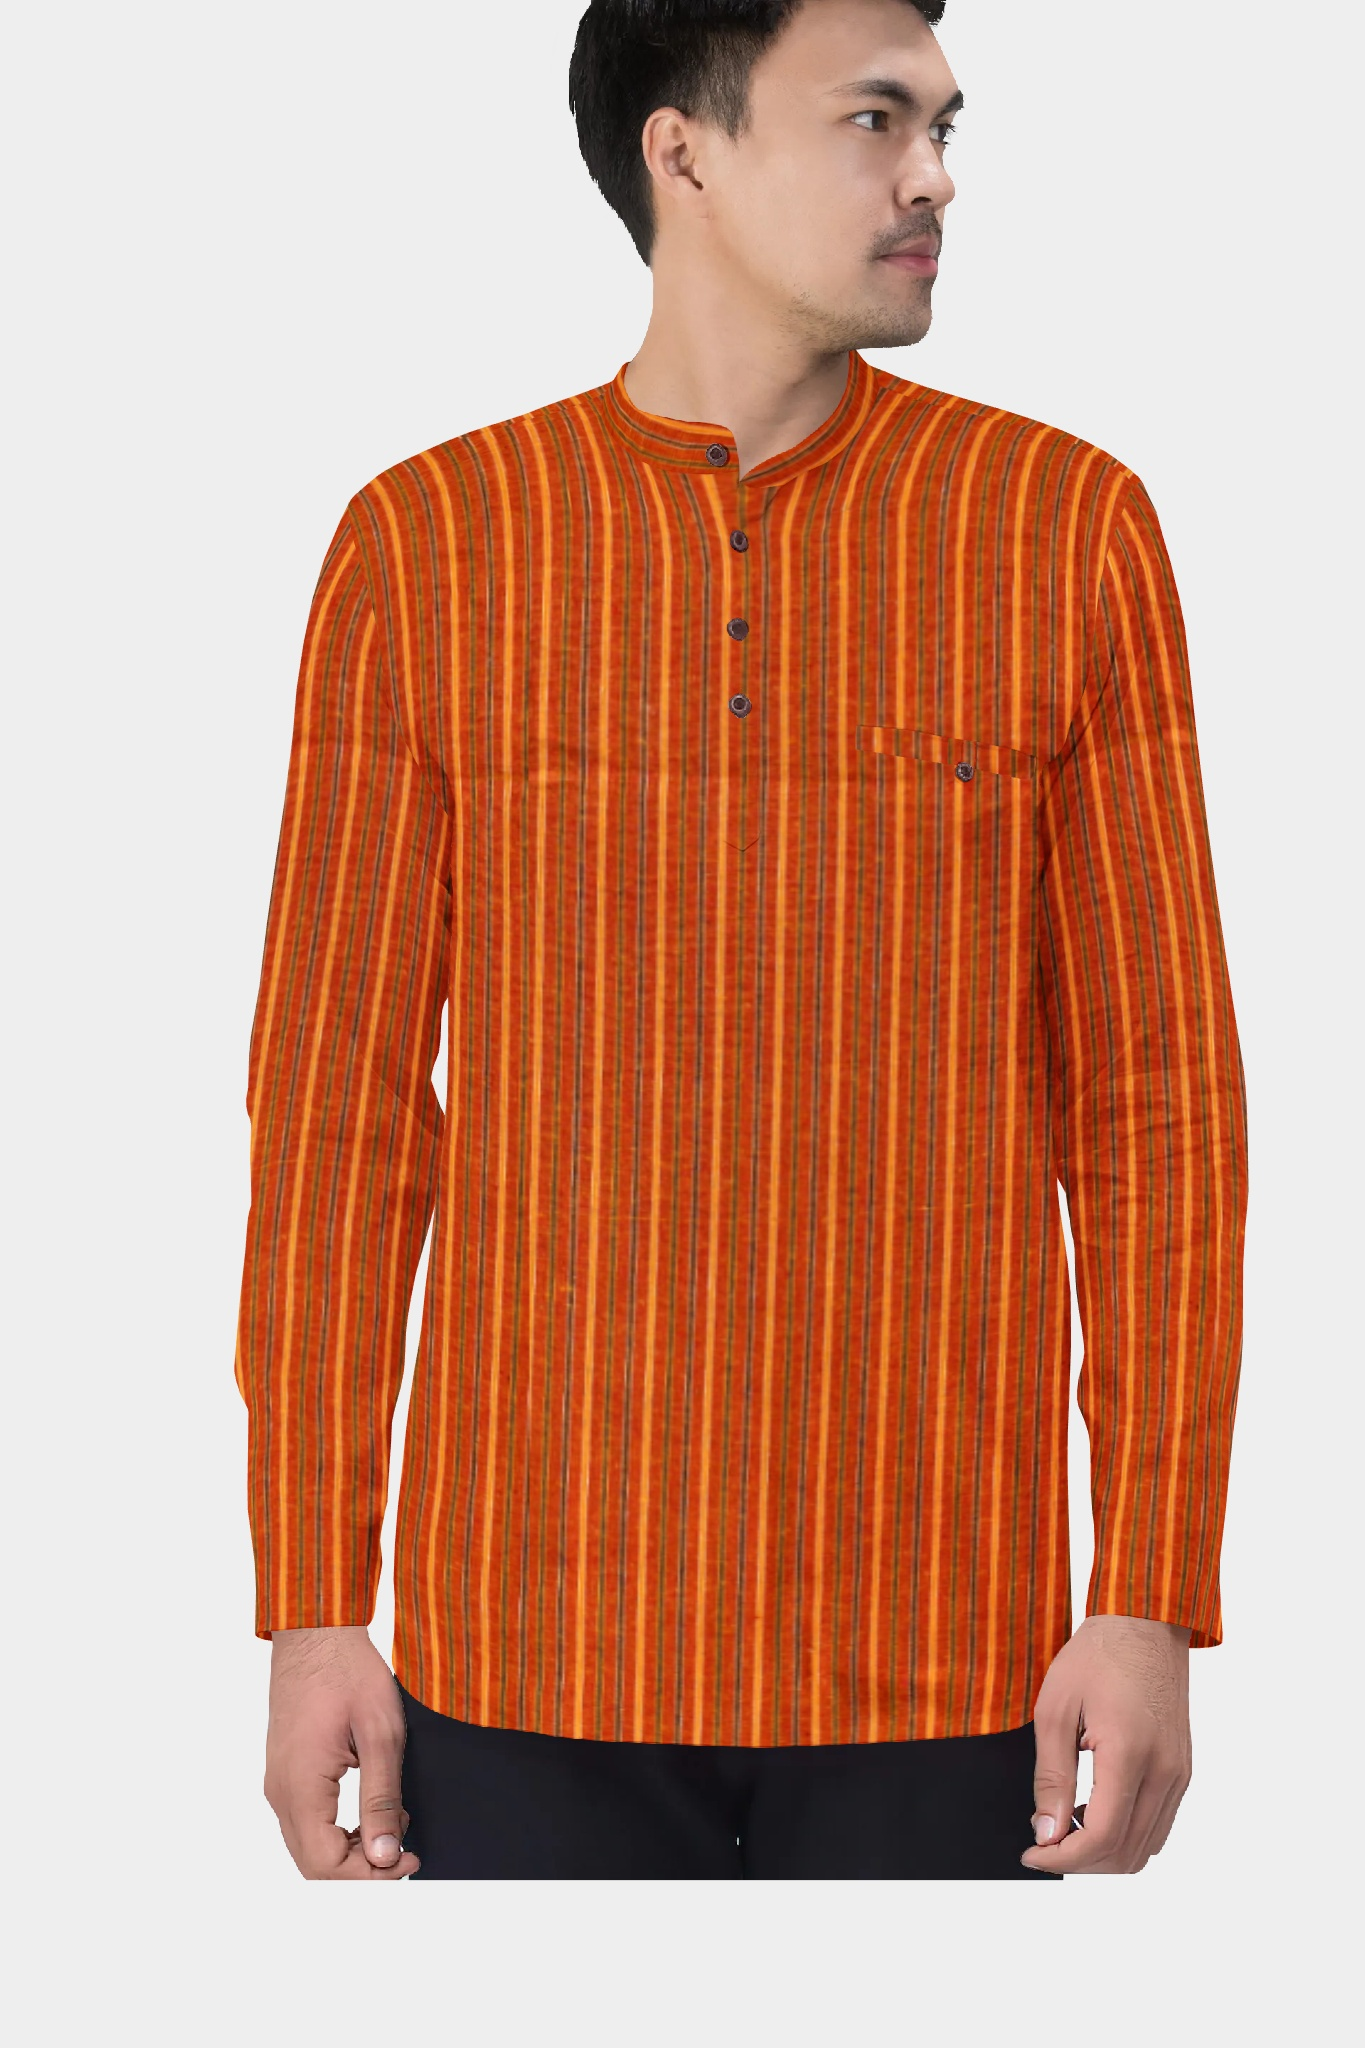 /home/customer/www/fabartcraft.com/public_html/uploadshttps://www.shopolics.com/uploads/images/medium/Orange-Yellow-Cotton-Short-Kurta-35422.jpg